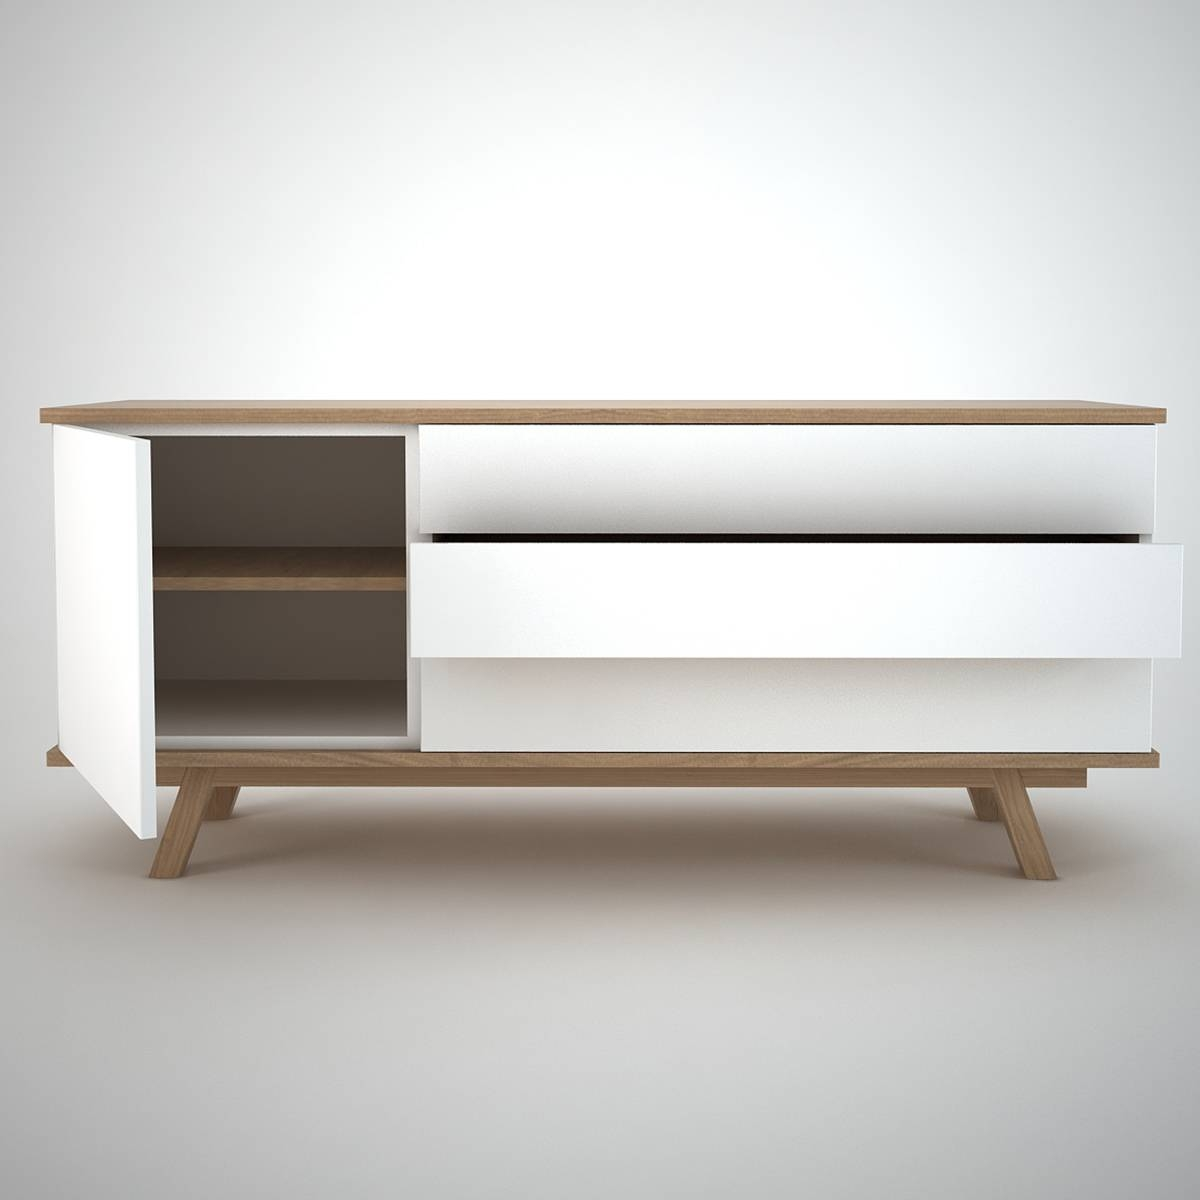 Furniture: Beautiful Profile Modern Sideboard For Living Room intended for White Modern Sideboards (Image 6 of 30)